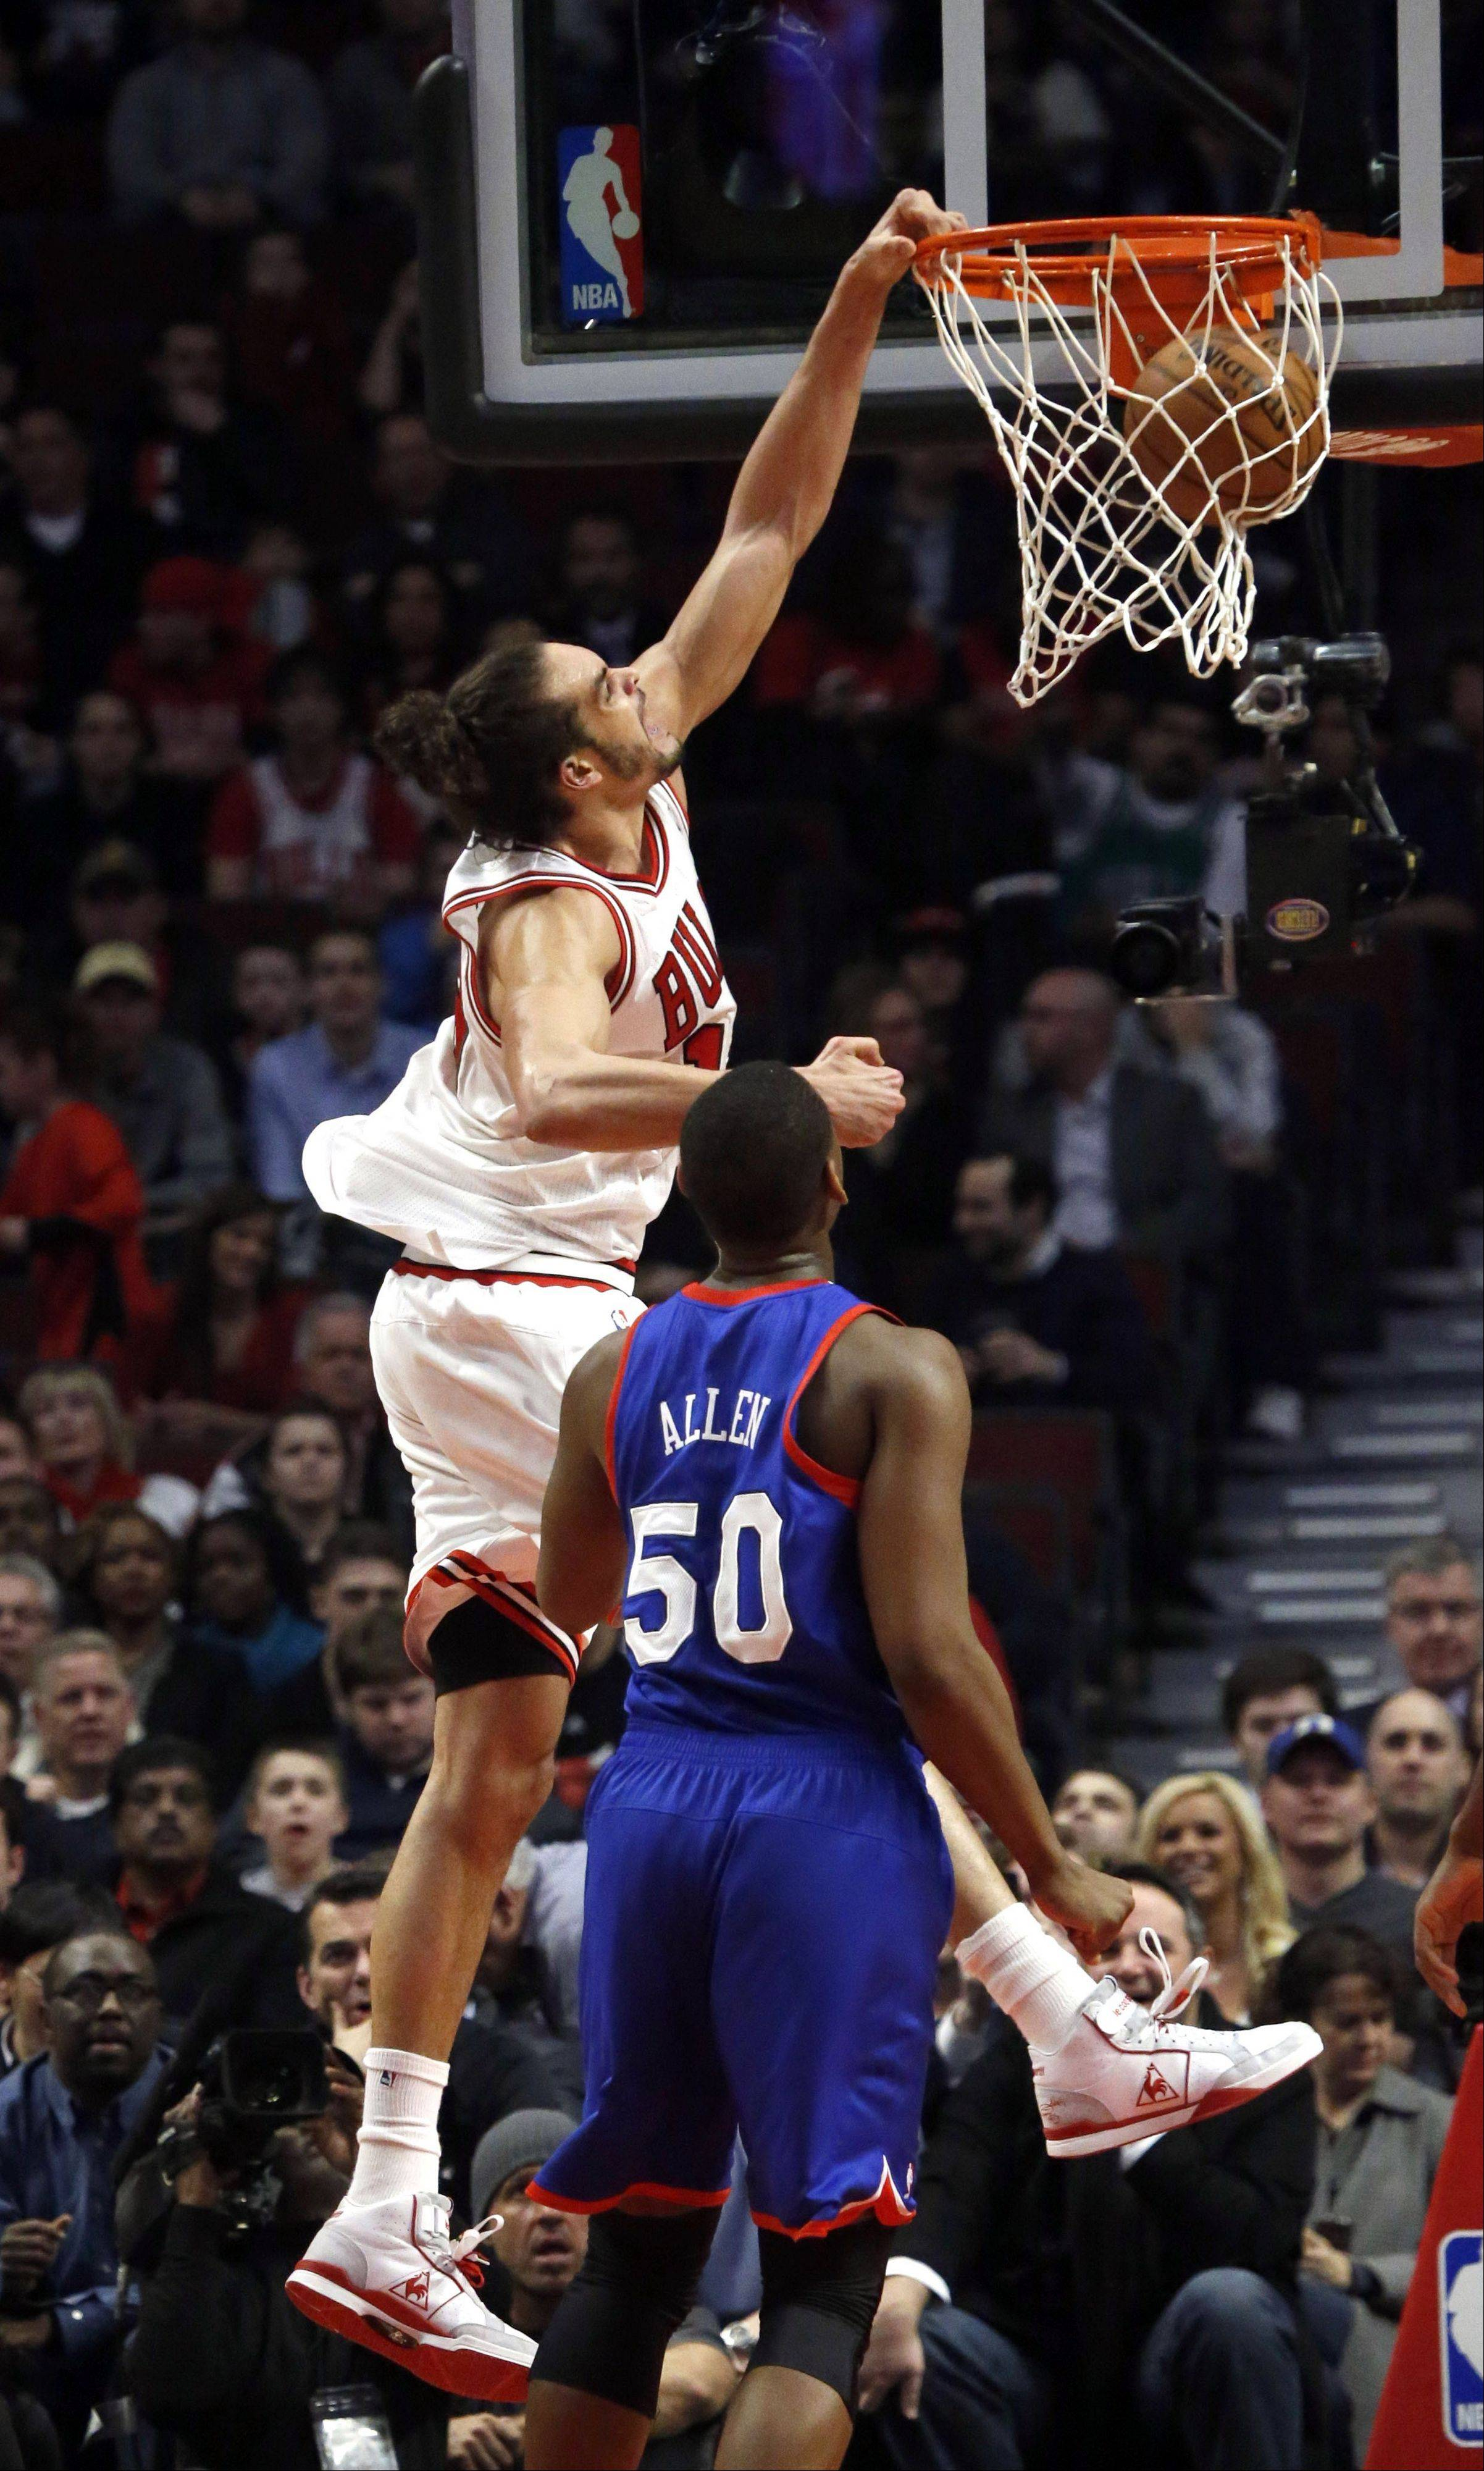 The Bulls' Joakim Noah slams down a pair of points Thursday against the Sixers at the United Center. Noah is the only NBA player to record 23 points, 21 boards, 11 blocks and shoot at least 65 percent from the field (he was 8-for-12) since blocked shots became an official stat in 1973-74.